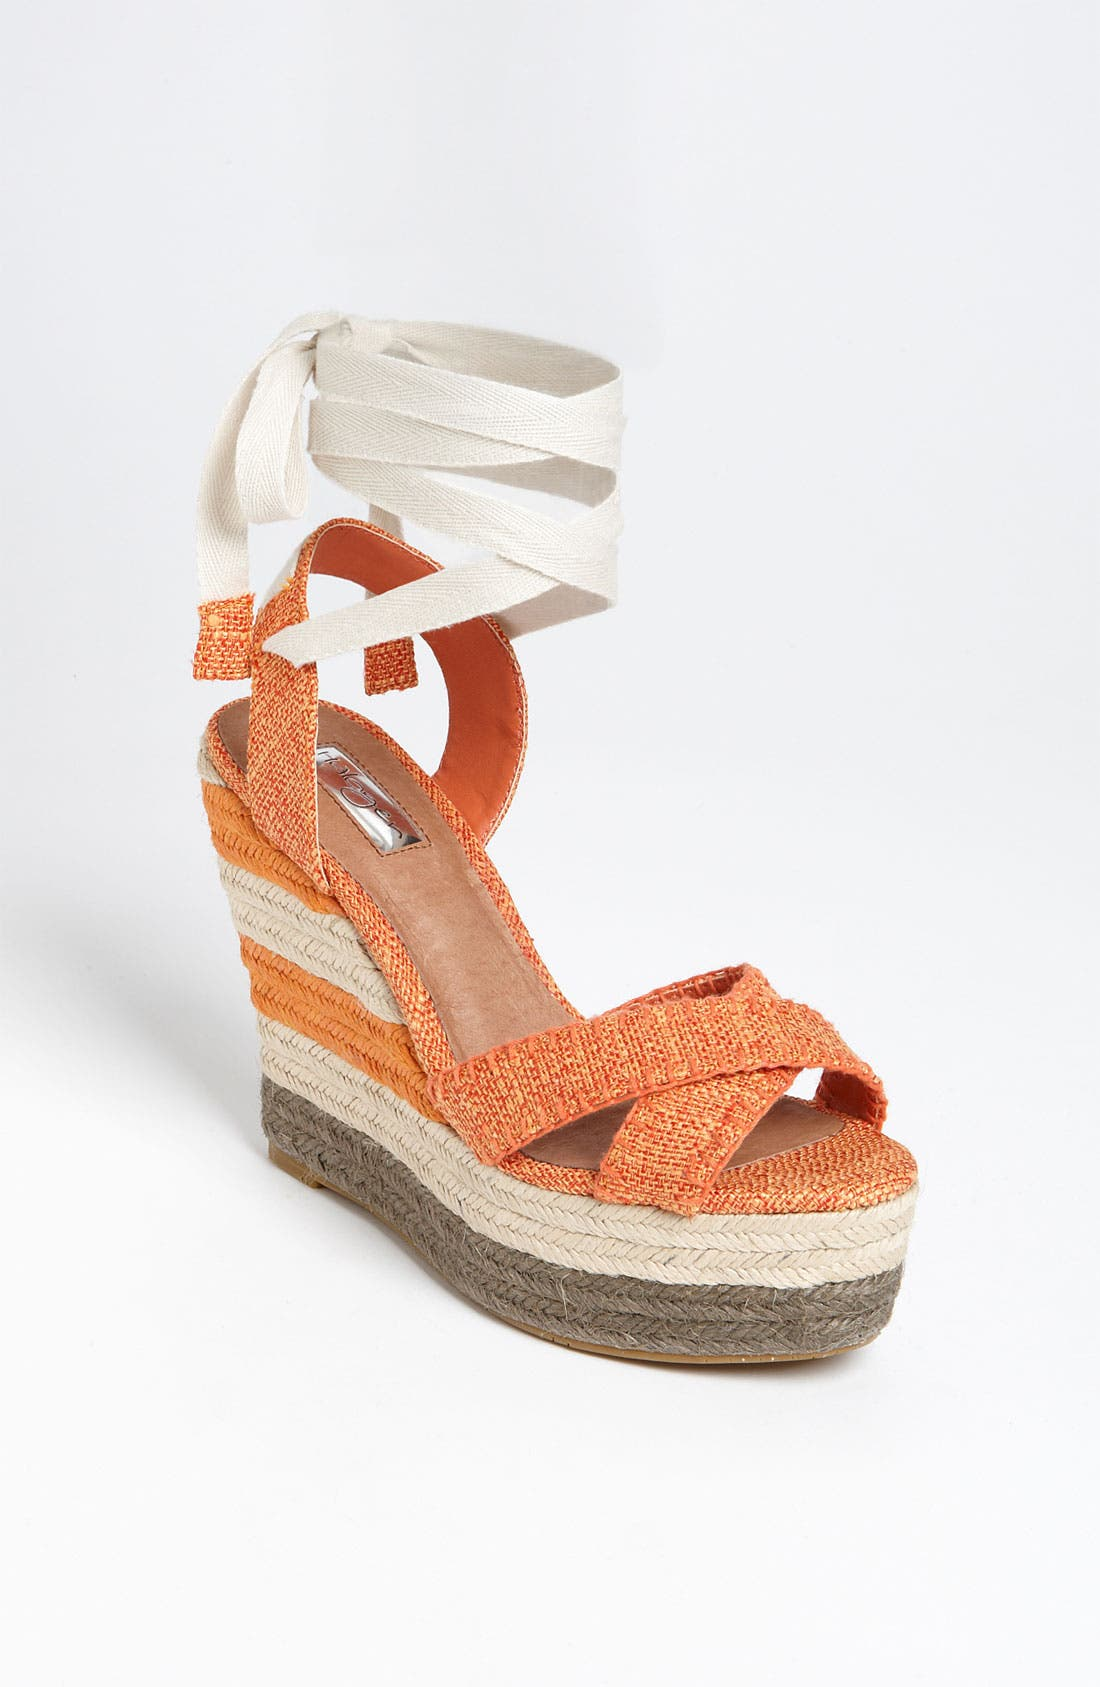 Main Image - HALOGEN SUNSET ROPE WEDGE ESPADRILLE